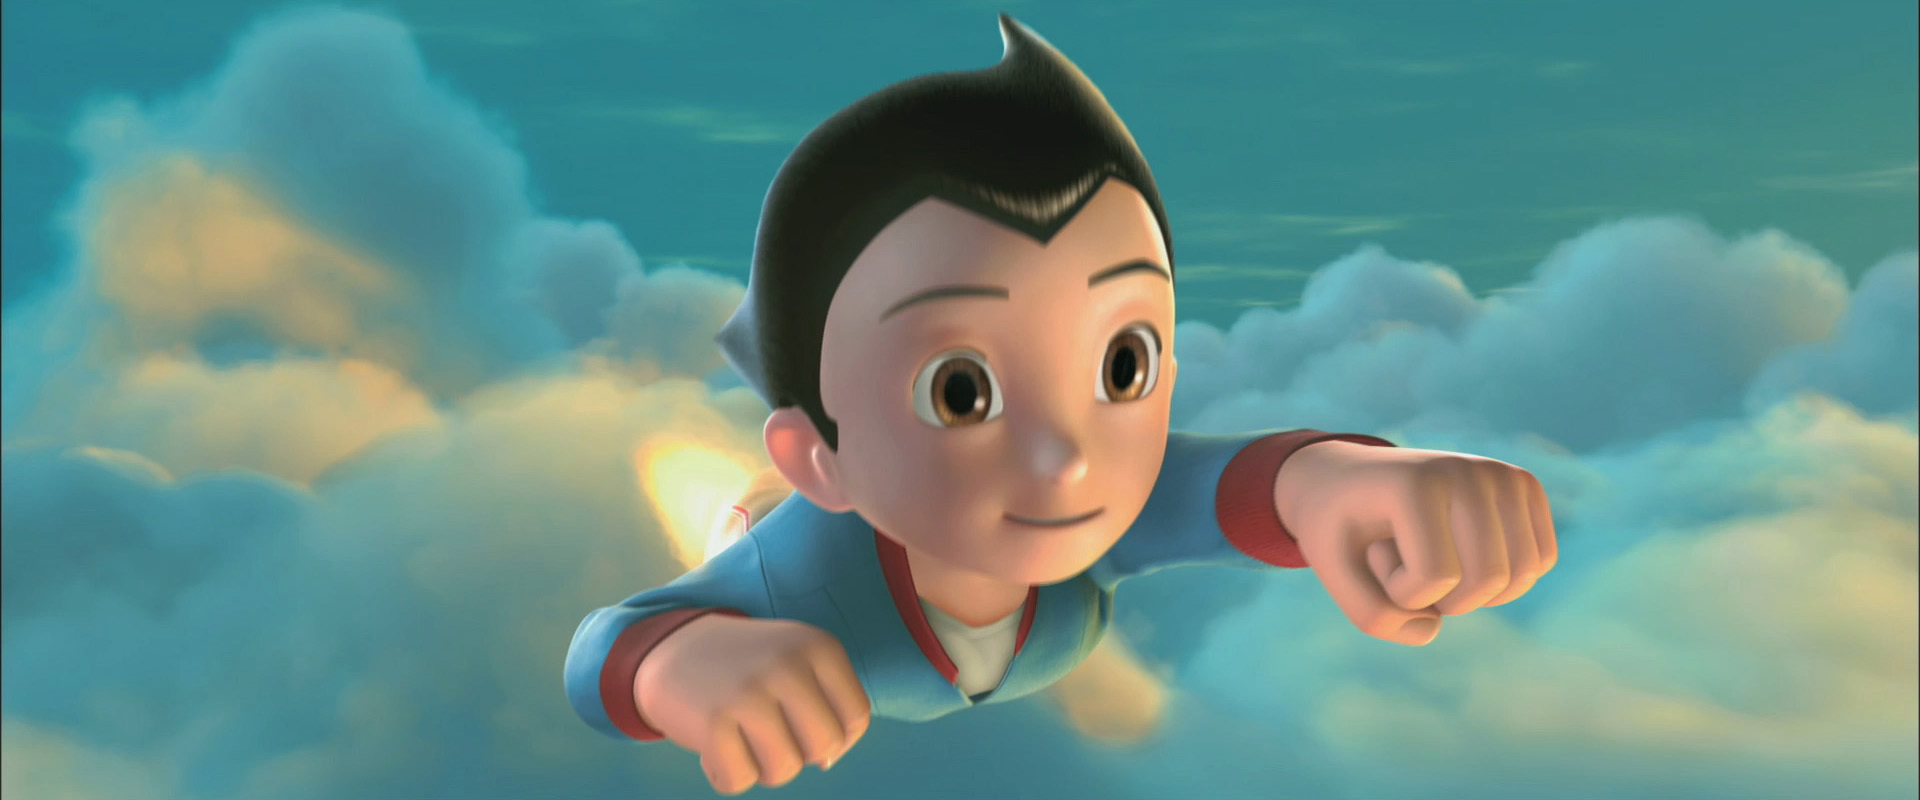 ASTRO BOY Photo Gallery: Posters, Images, Wallpapers - FilmoFilia